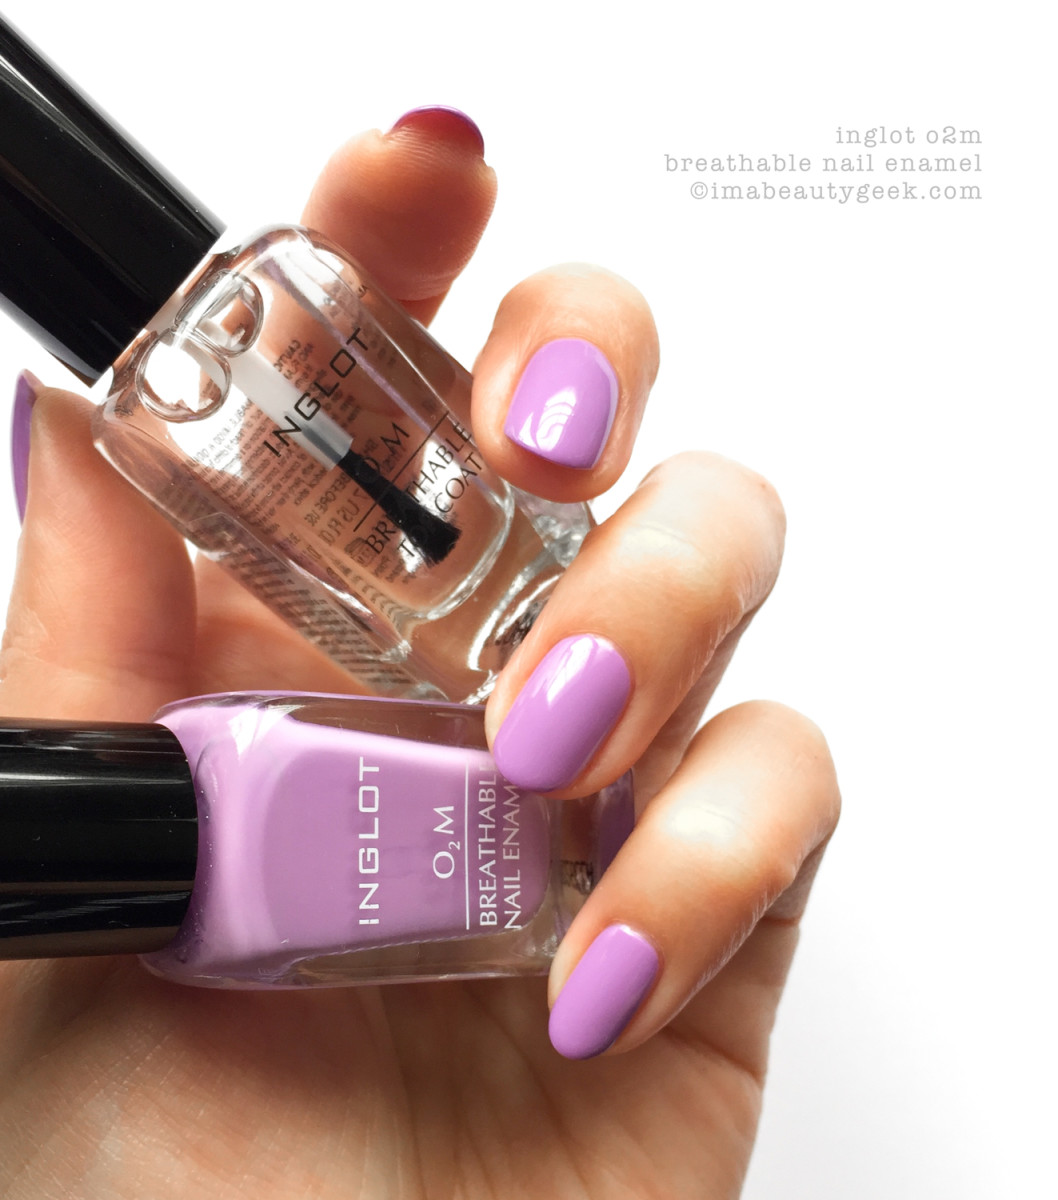 Inglot O2m Breathable Nail Enamel Swatches Review Beautygeeks